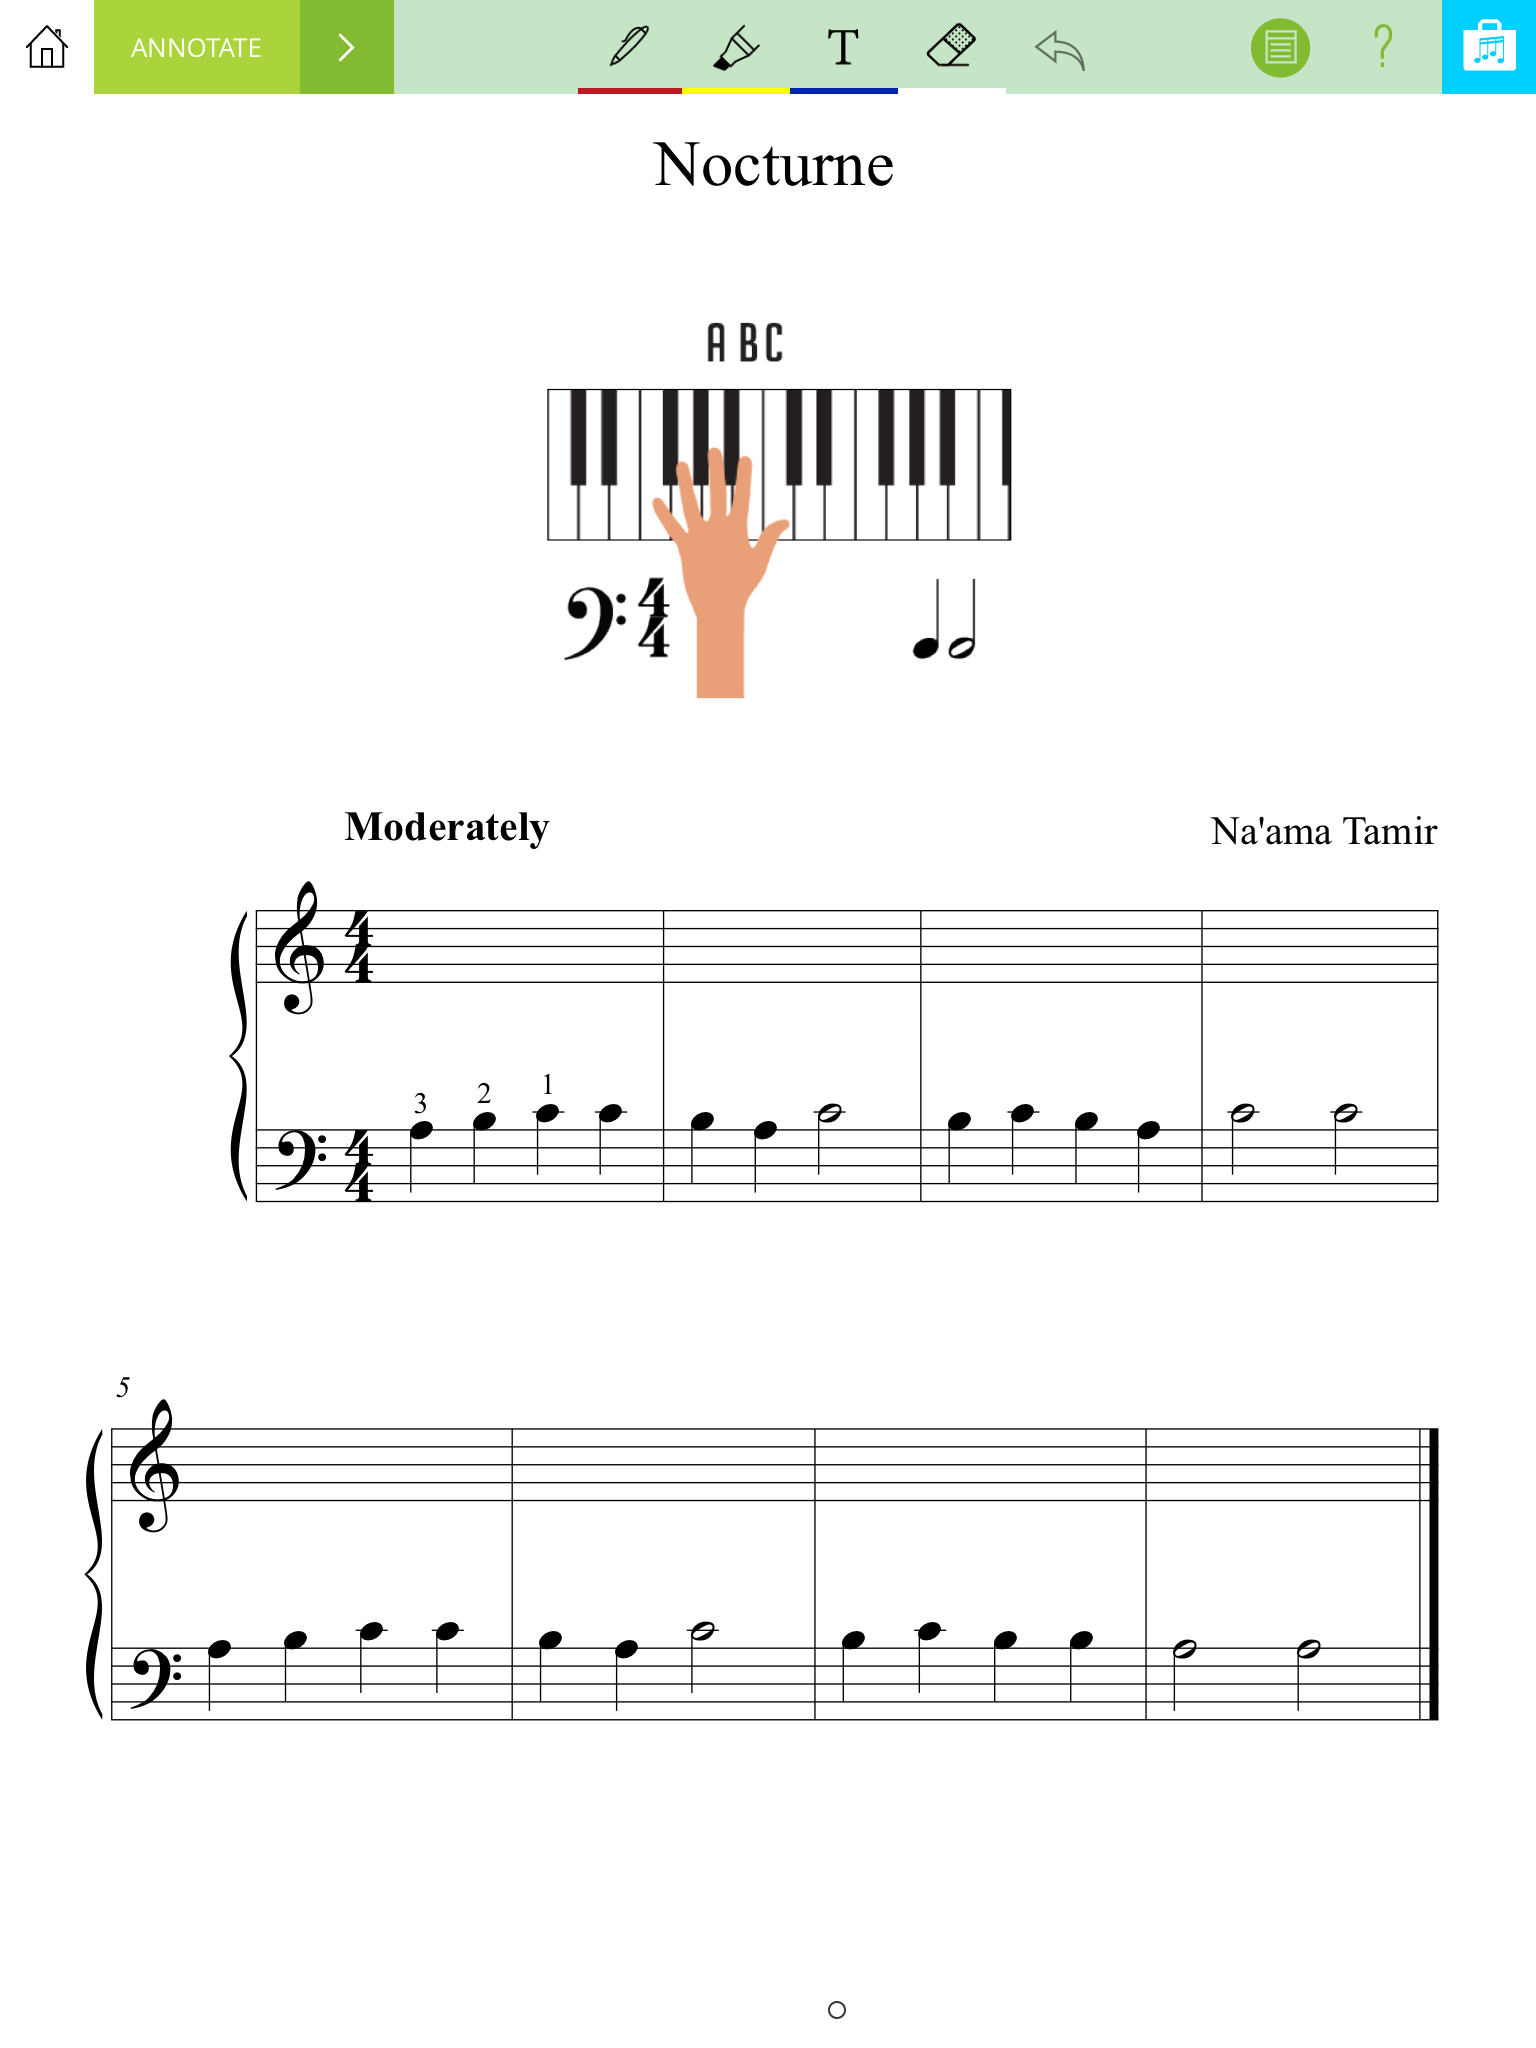 In annotate mode, it's easy to write directly on the sheet music, and zoom in for more detailed edits.